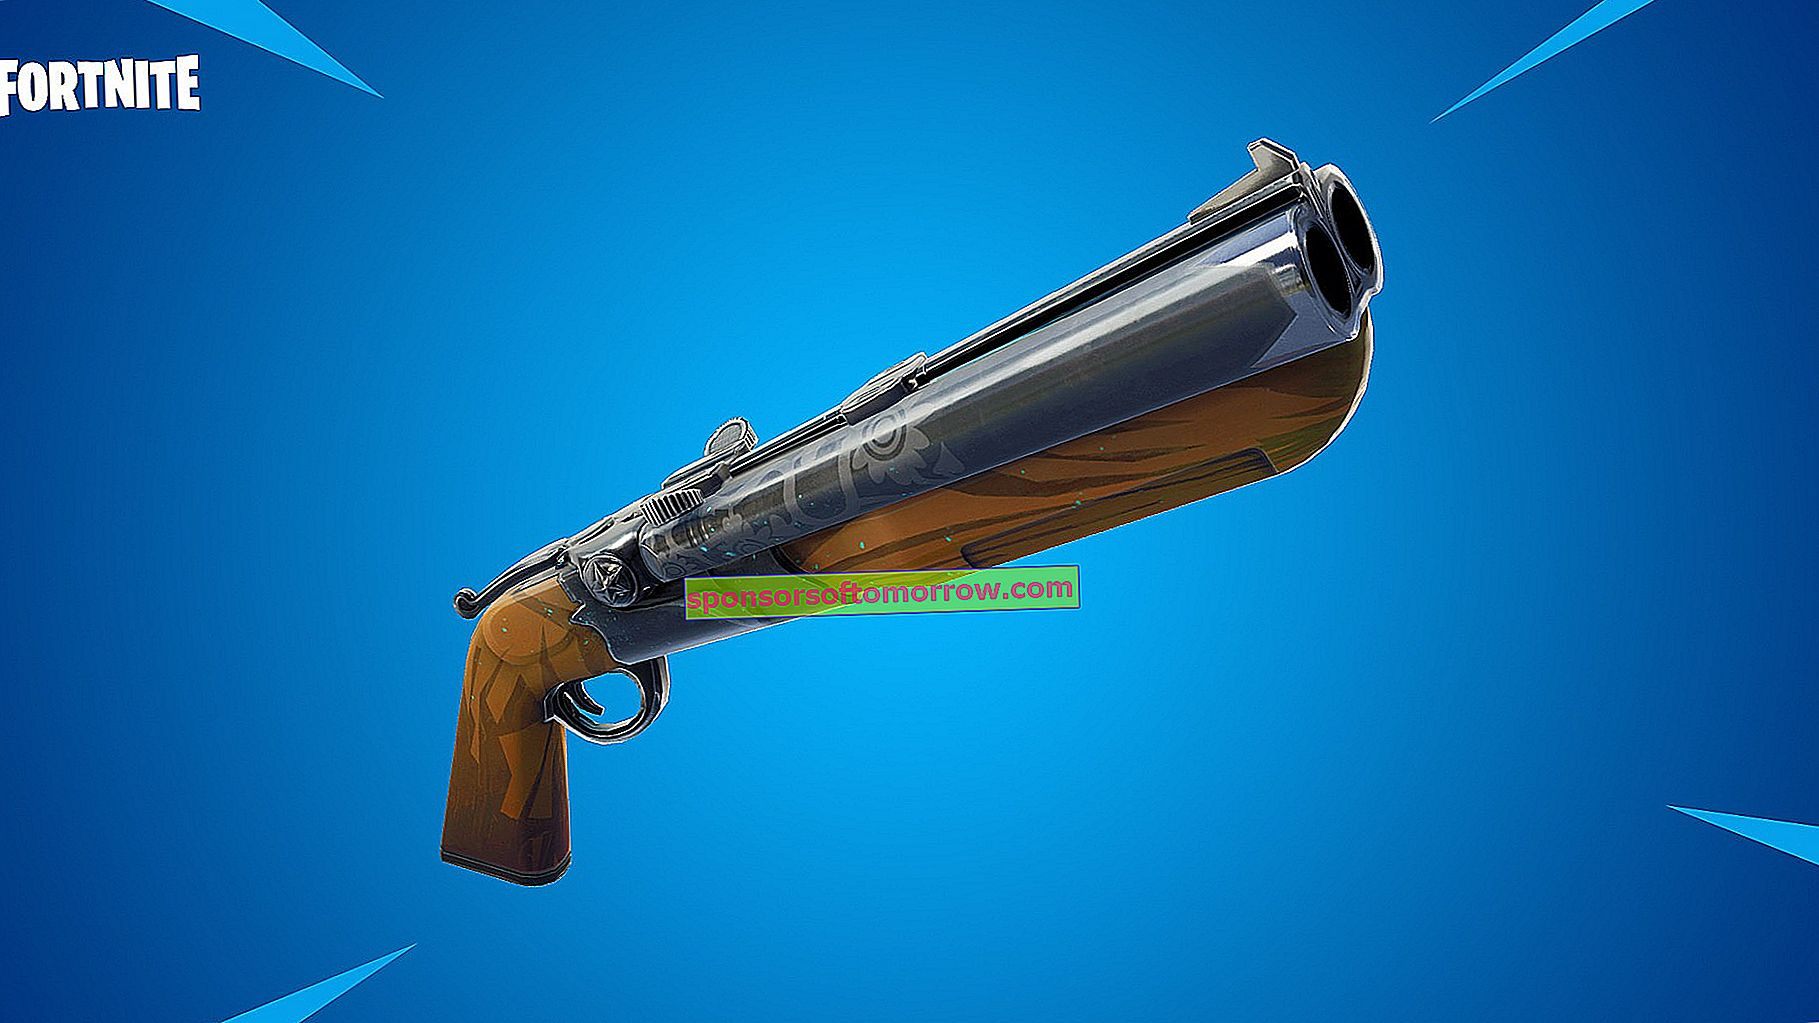 Shotgun_fortnite